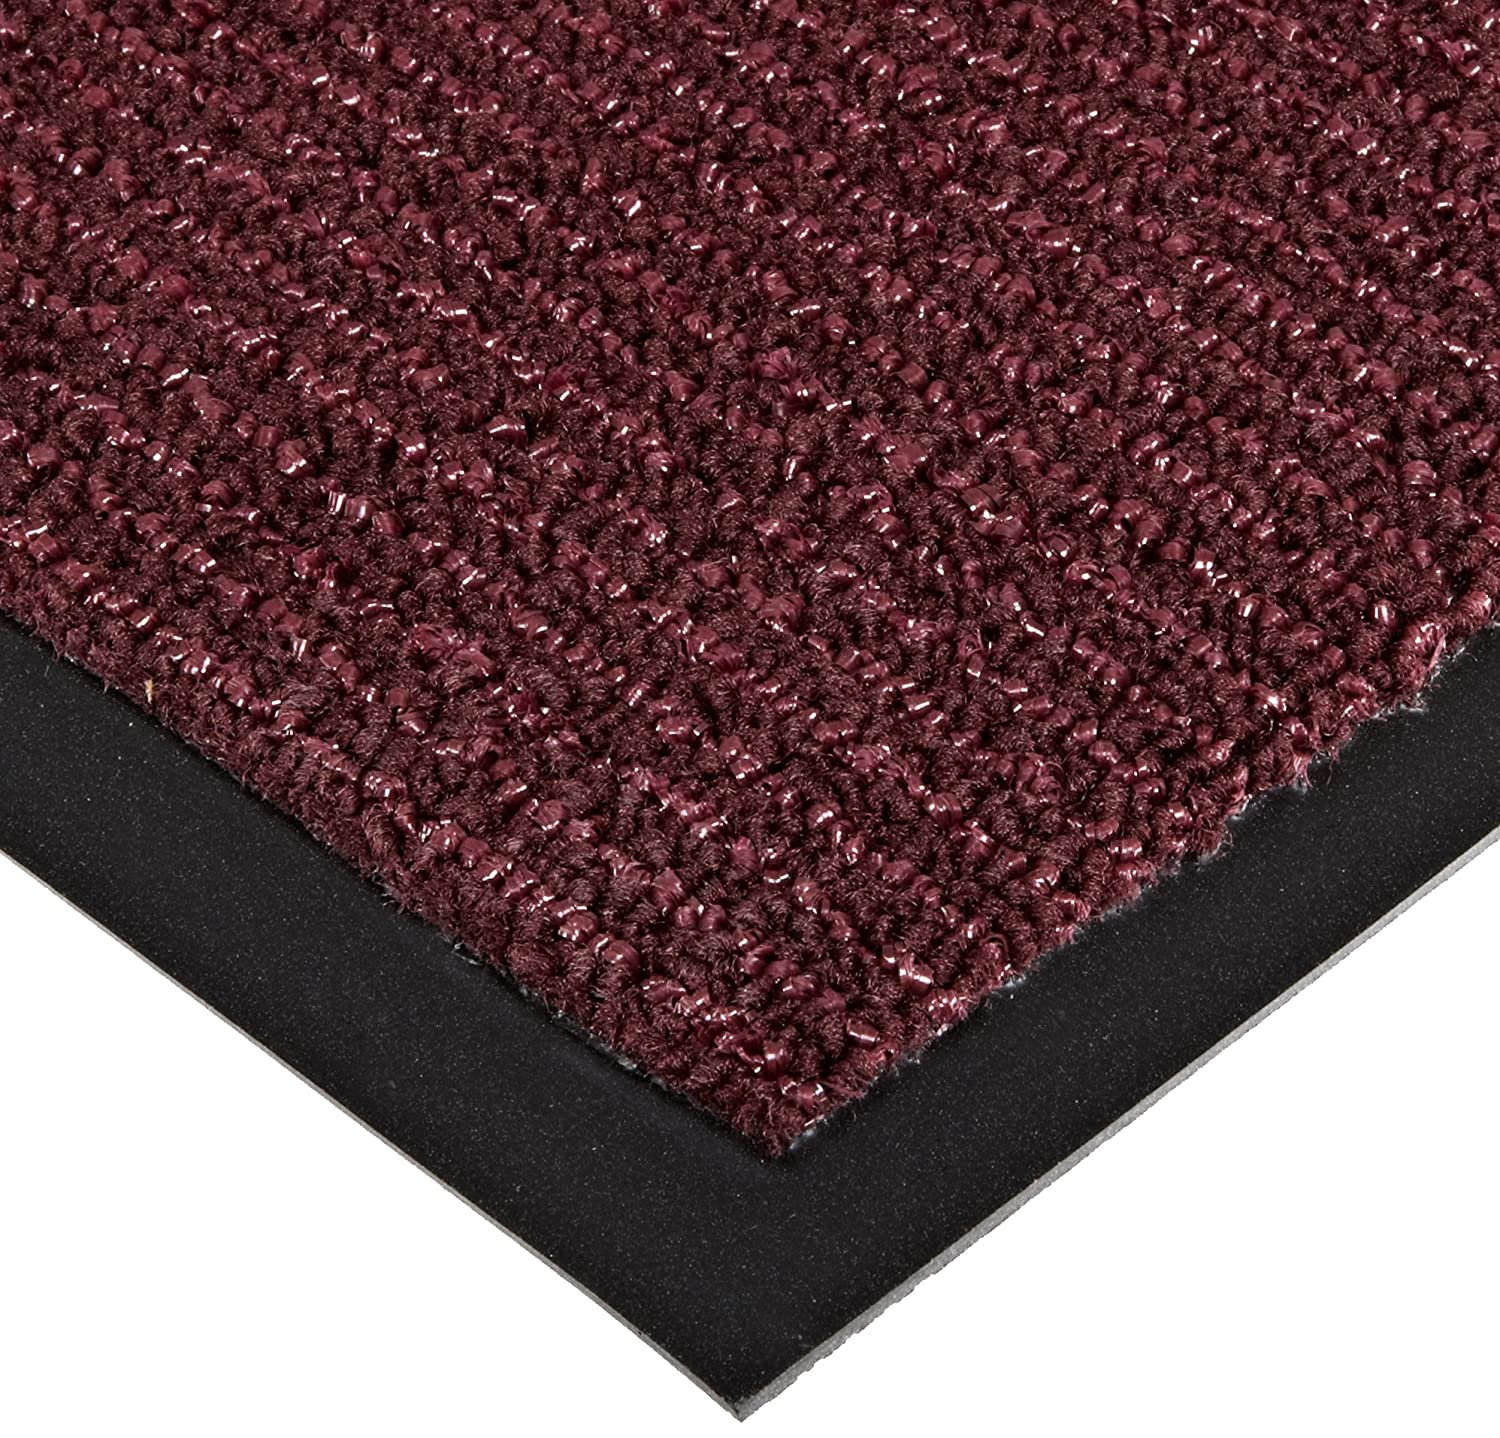 Notrax 146 Encore Entrance Mat for Inside Foyer Area 3 Width x 6 Length x 5//16 Thickness Black 3/' Width x 6/' Length x 5//16 Thickness Superior Manufacturing